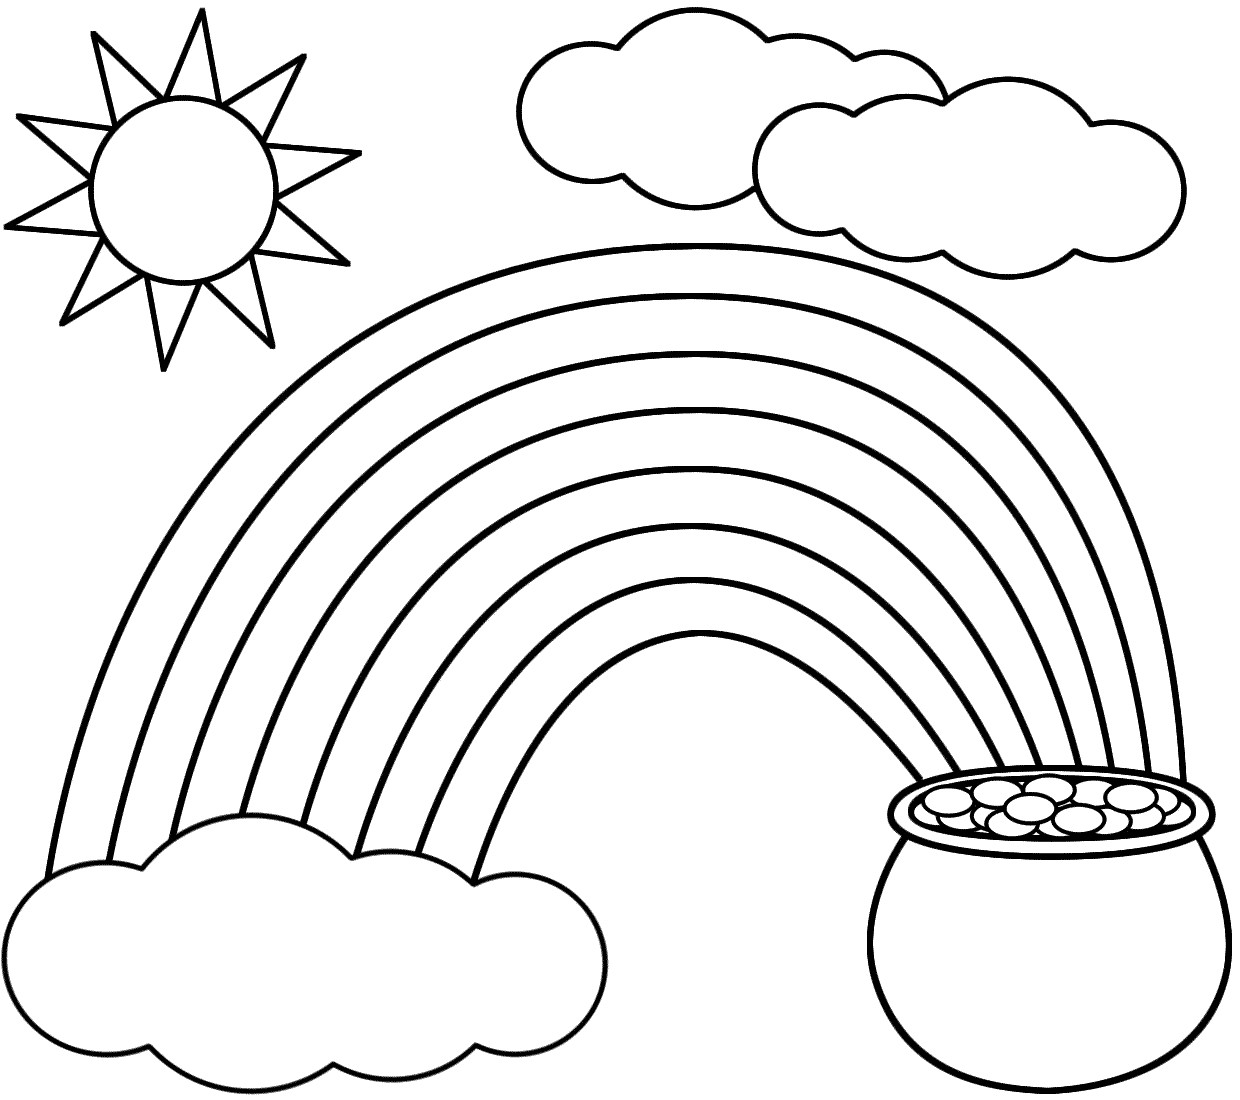 1240x1100 Leprechaun Coloring Pages Free Best Of Rainbow Pot Gold Sun